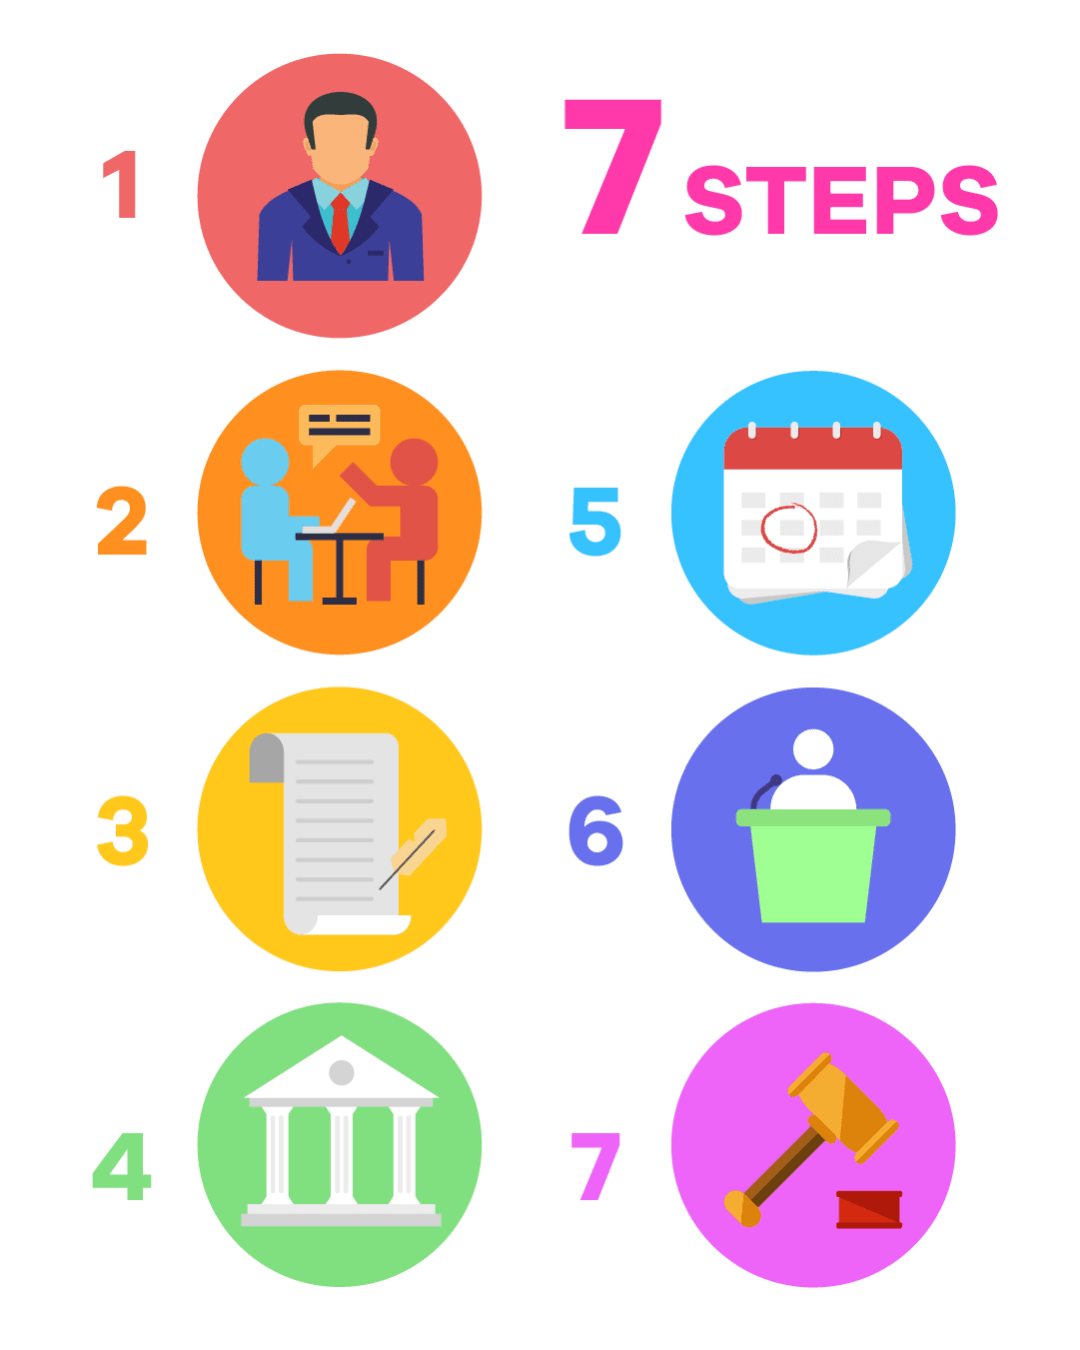 Infographic discussing the 7 steps to Annulment.